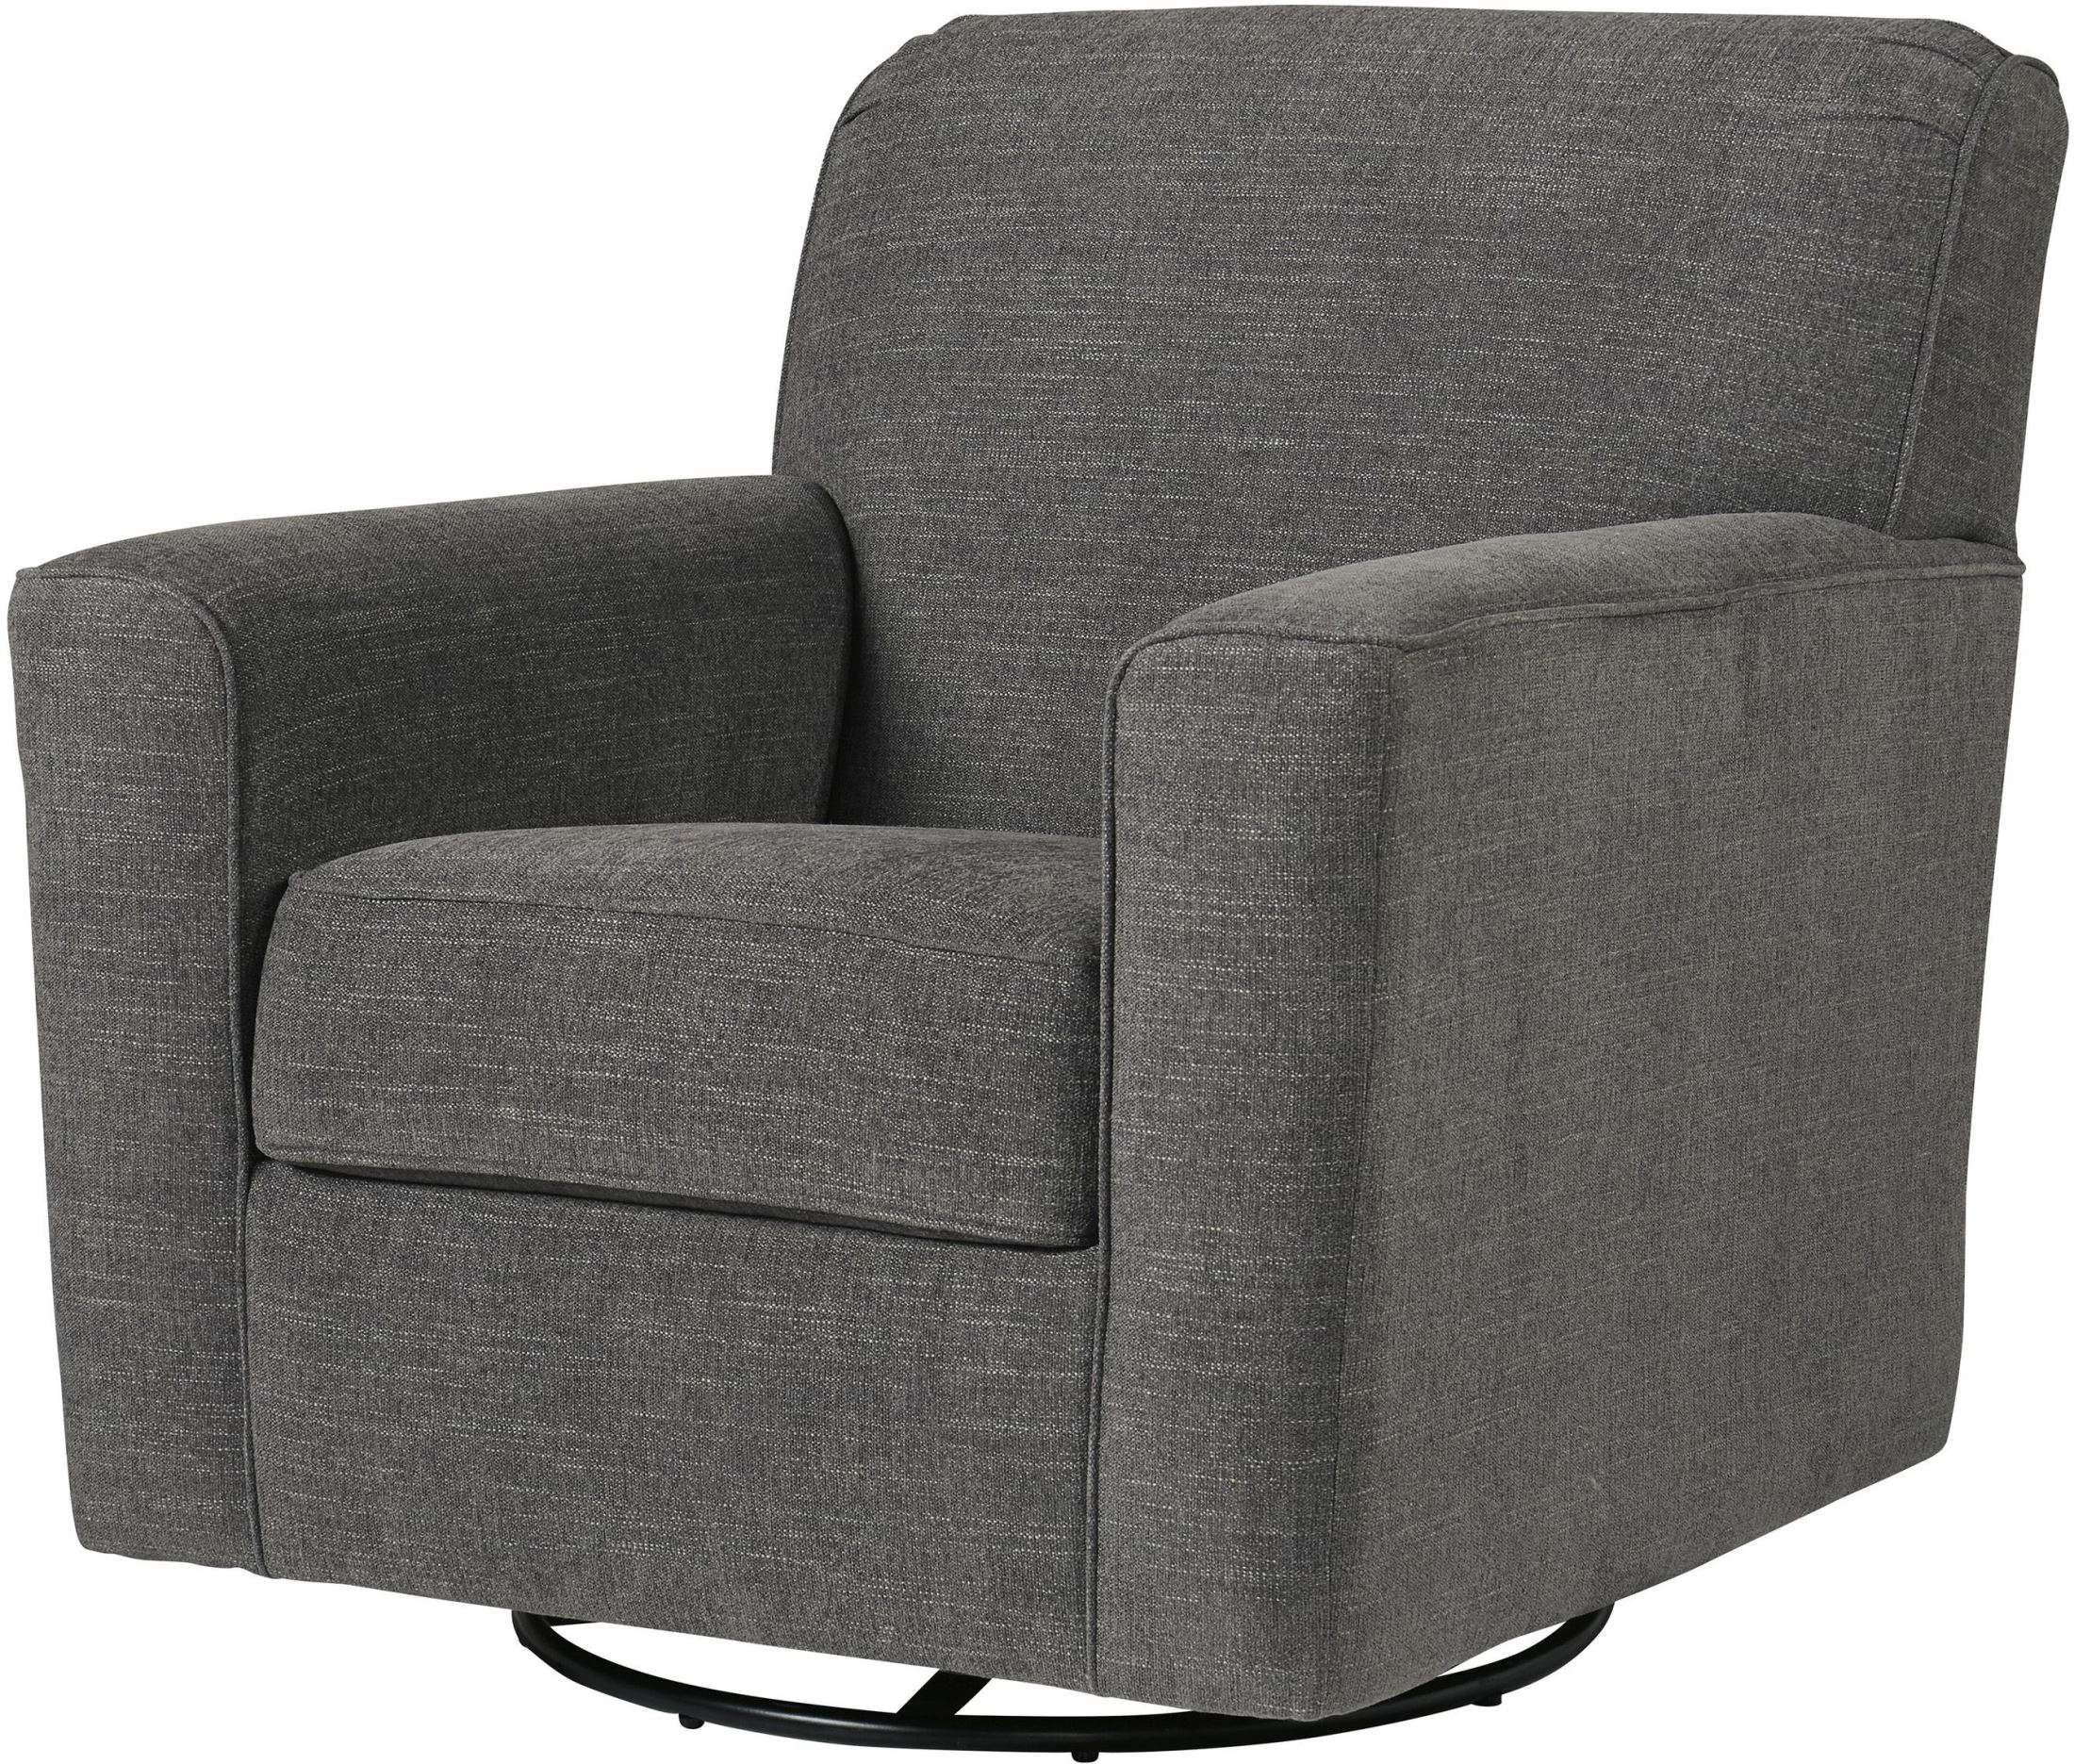 Signature Designashley Alcona Charcoal Swivel Glider Accent Inside Latest Charcoal Swivel Chairs (Gallery 7 of 20)